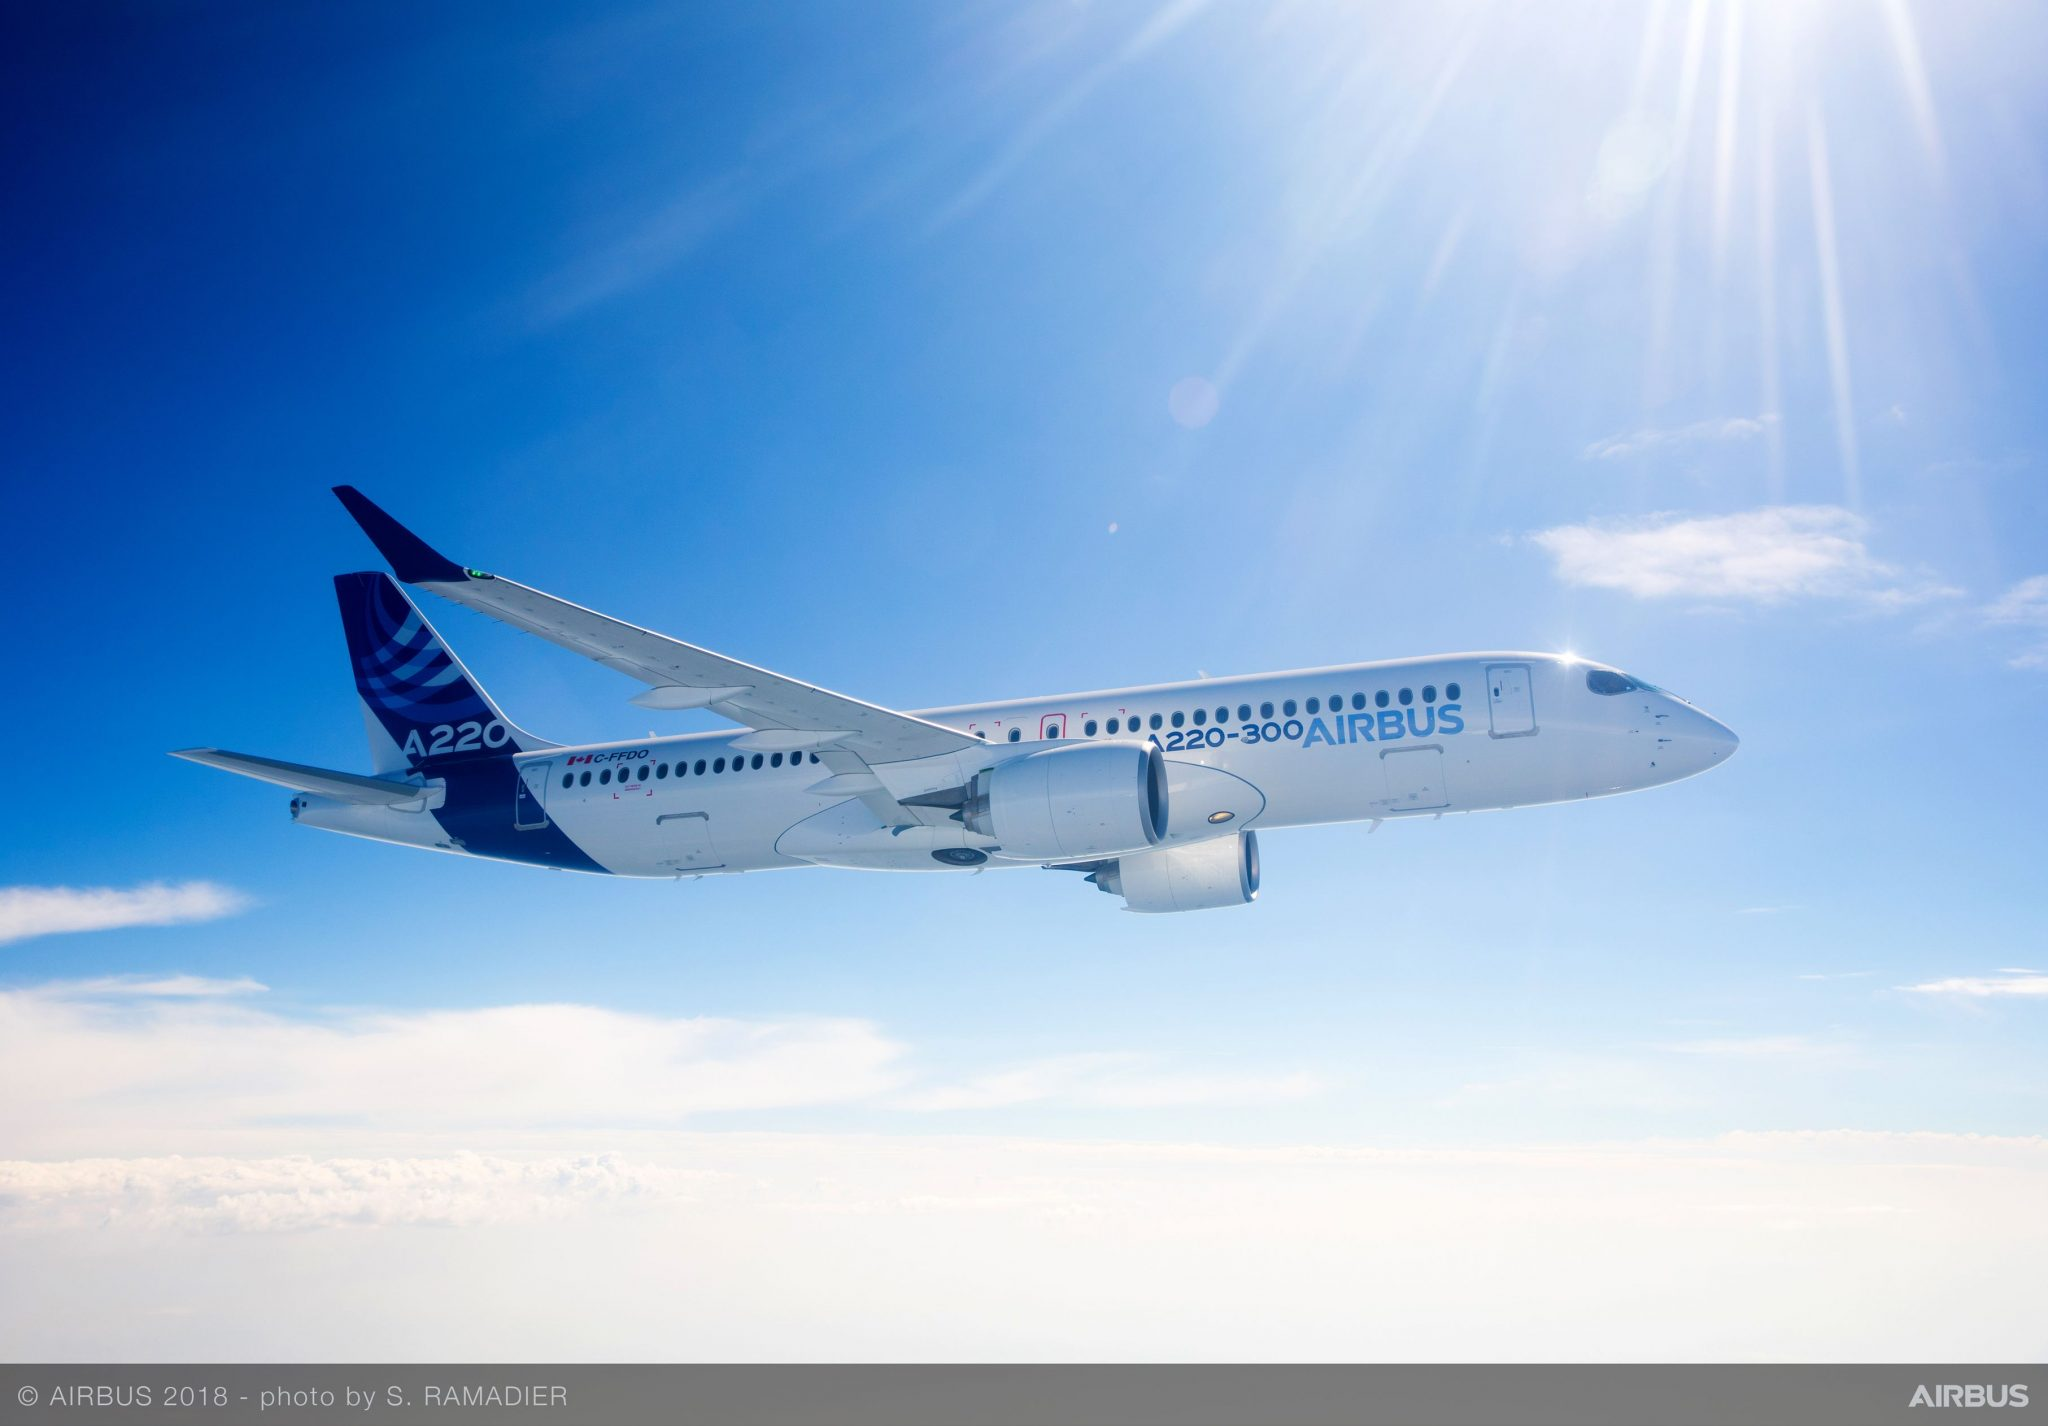 New Start-Up Airline 'Moxy' Places Order for 60 Airbus A220-300 Jets